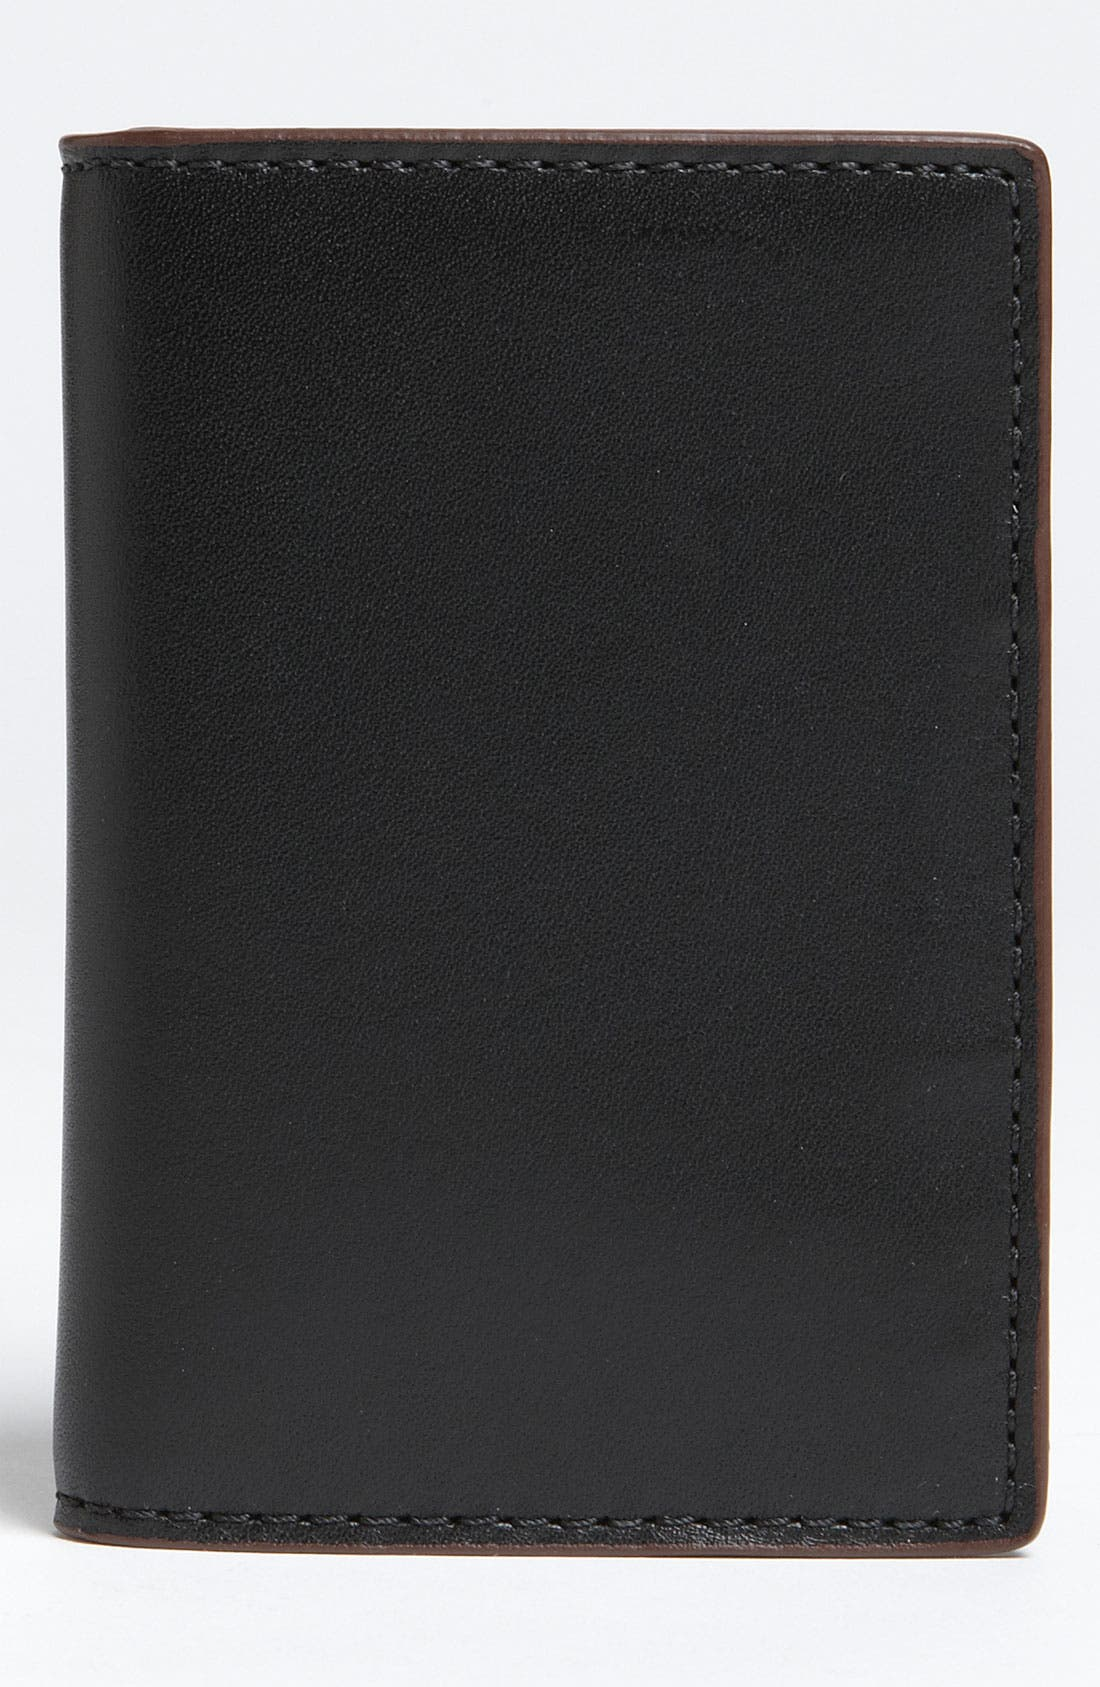 Alternate Image 1 Selected - Jack Spade 'Vertical Flap' Mill Leather Wallet